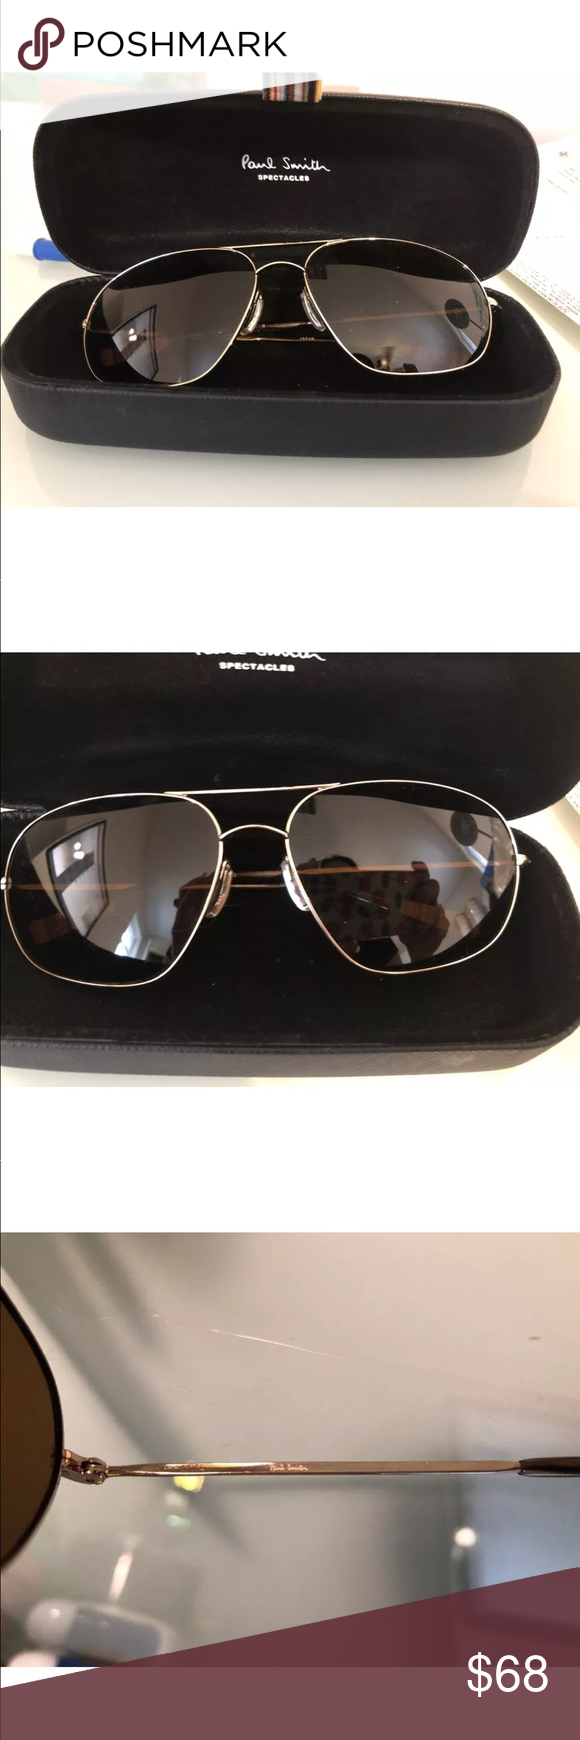 02ce20db0b Paul Smith Sunglasses Aviator Style Never Worn Awesome Paul Smith gold  frame sunglasses Comes with case